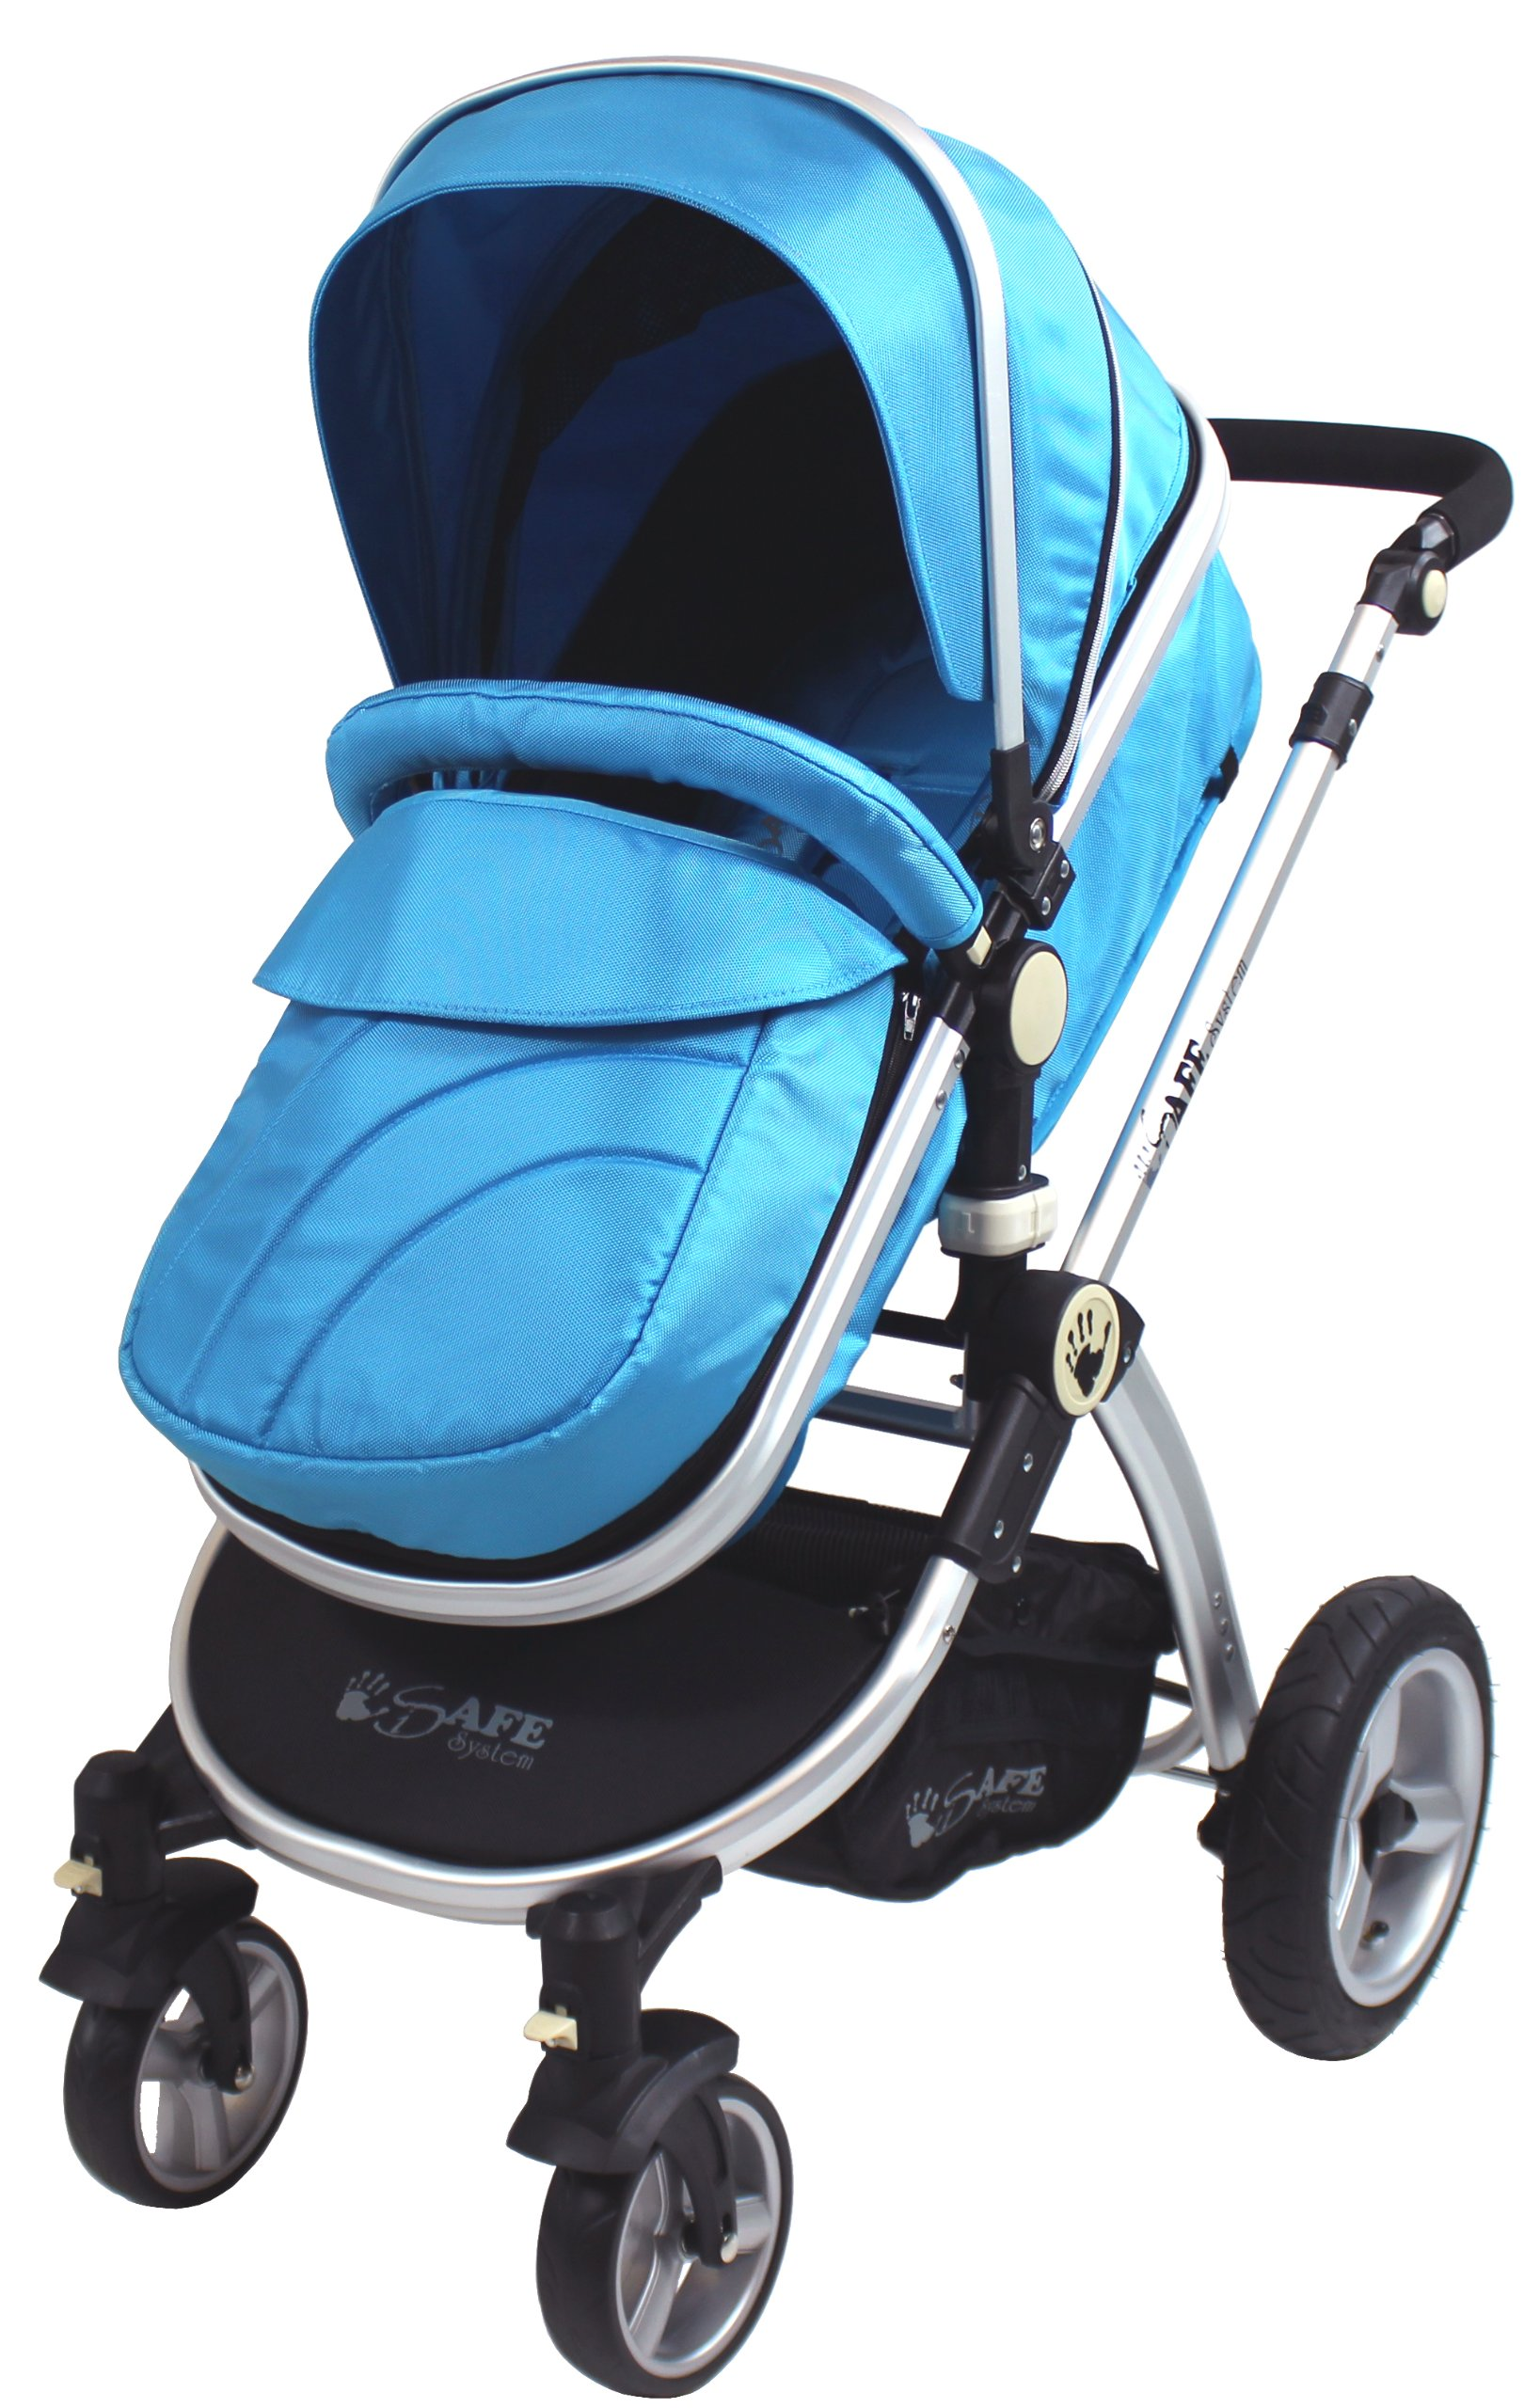 iSafe 2 in 1 Baby Pram System Complete (Ocean) iSafe We Are Proud To Present One Of The Finest 2in1 Stroller/Pram/Pramette/Travel System in the UK & Europe! 2 in 1 Stroller / Pram Extremely Easy Conversion To A Full Size Carrycot For Unrivalled Comfort. Complete With Boot Cover, Luxury Liner, 5 Point Harness, Raincover, Shopping Basket With Closed Ziped Top High Quality Rubber Inflatable Wheels With The Full All around Soft Suspension For That Perfect Unrivalled Ride 6